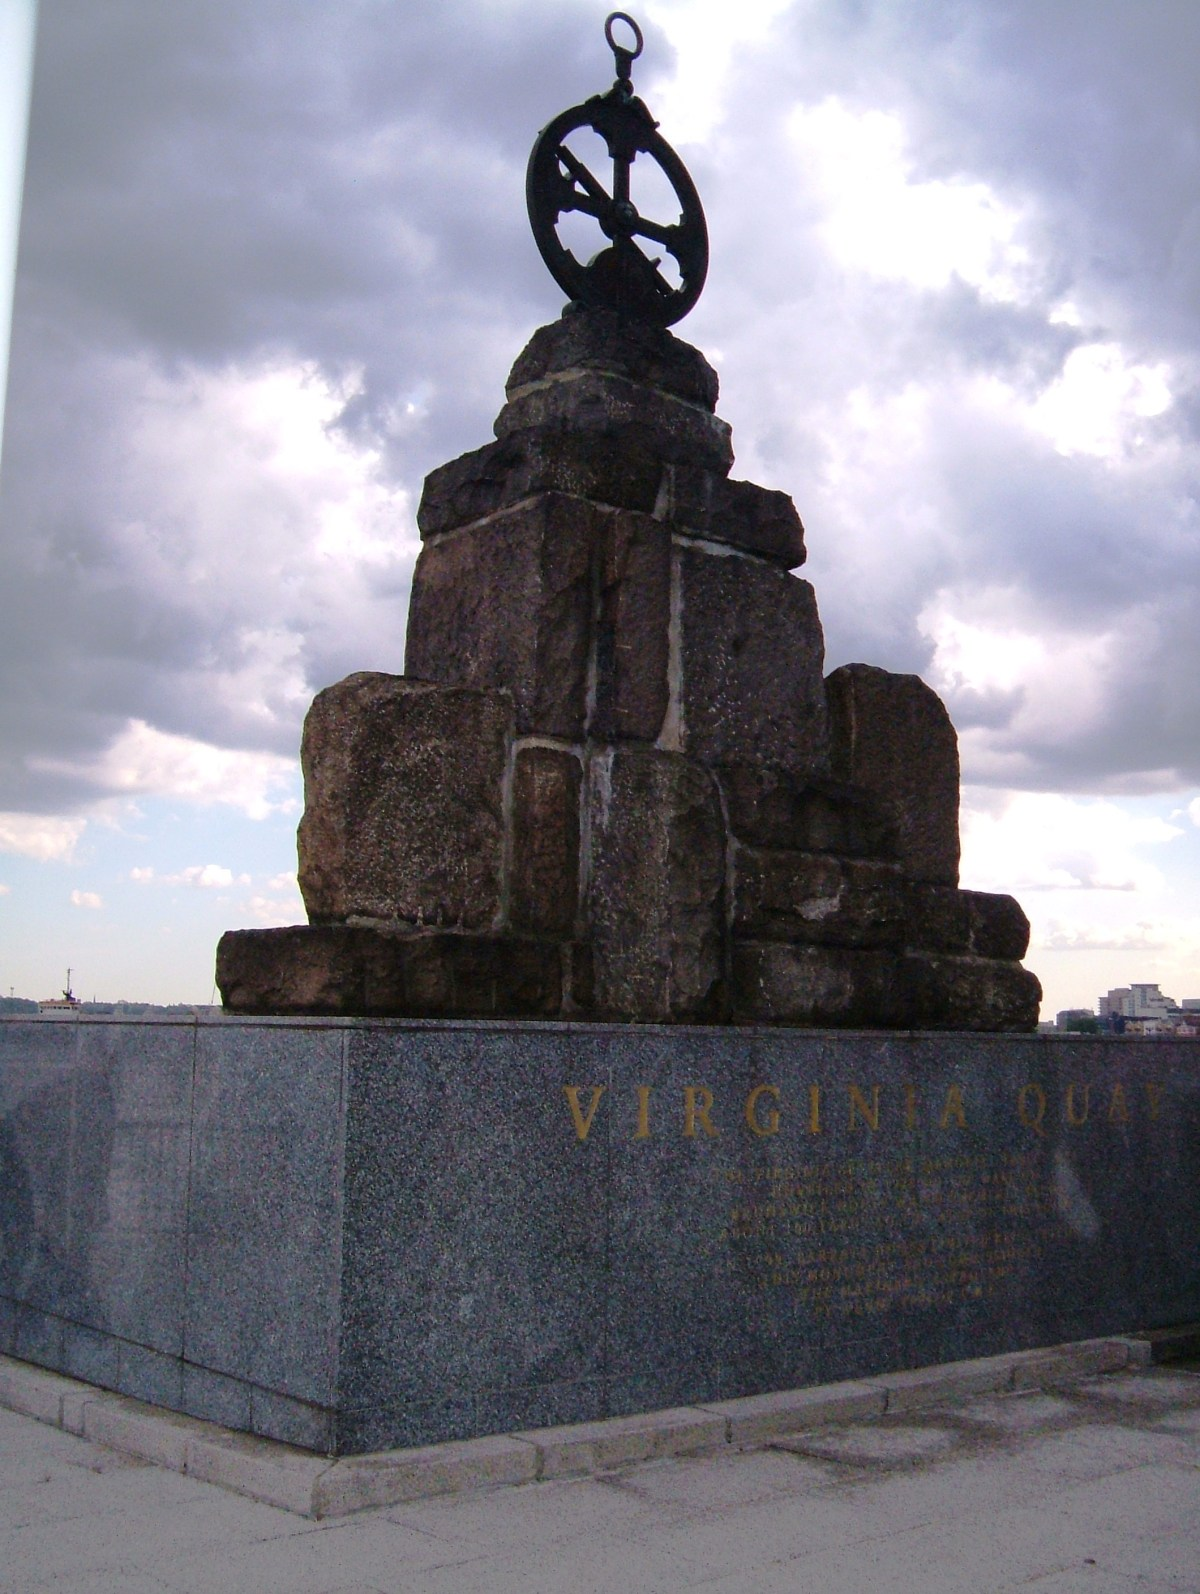 The Virginia Memorial on Brunswick Wharf